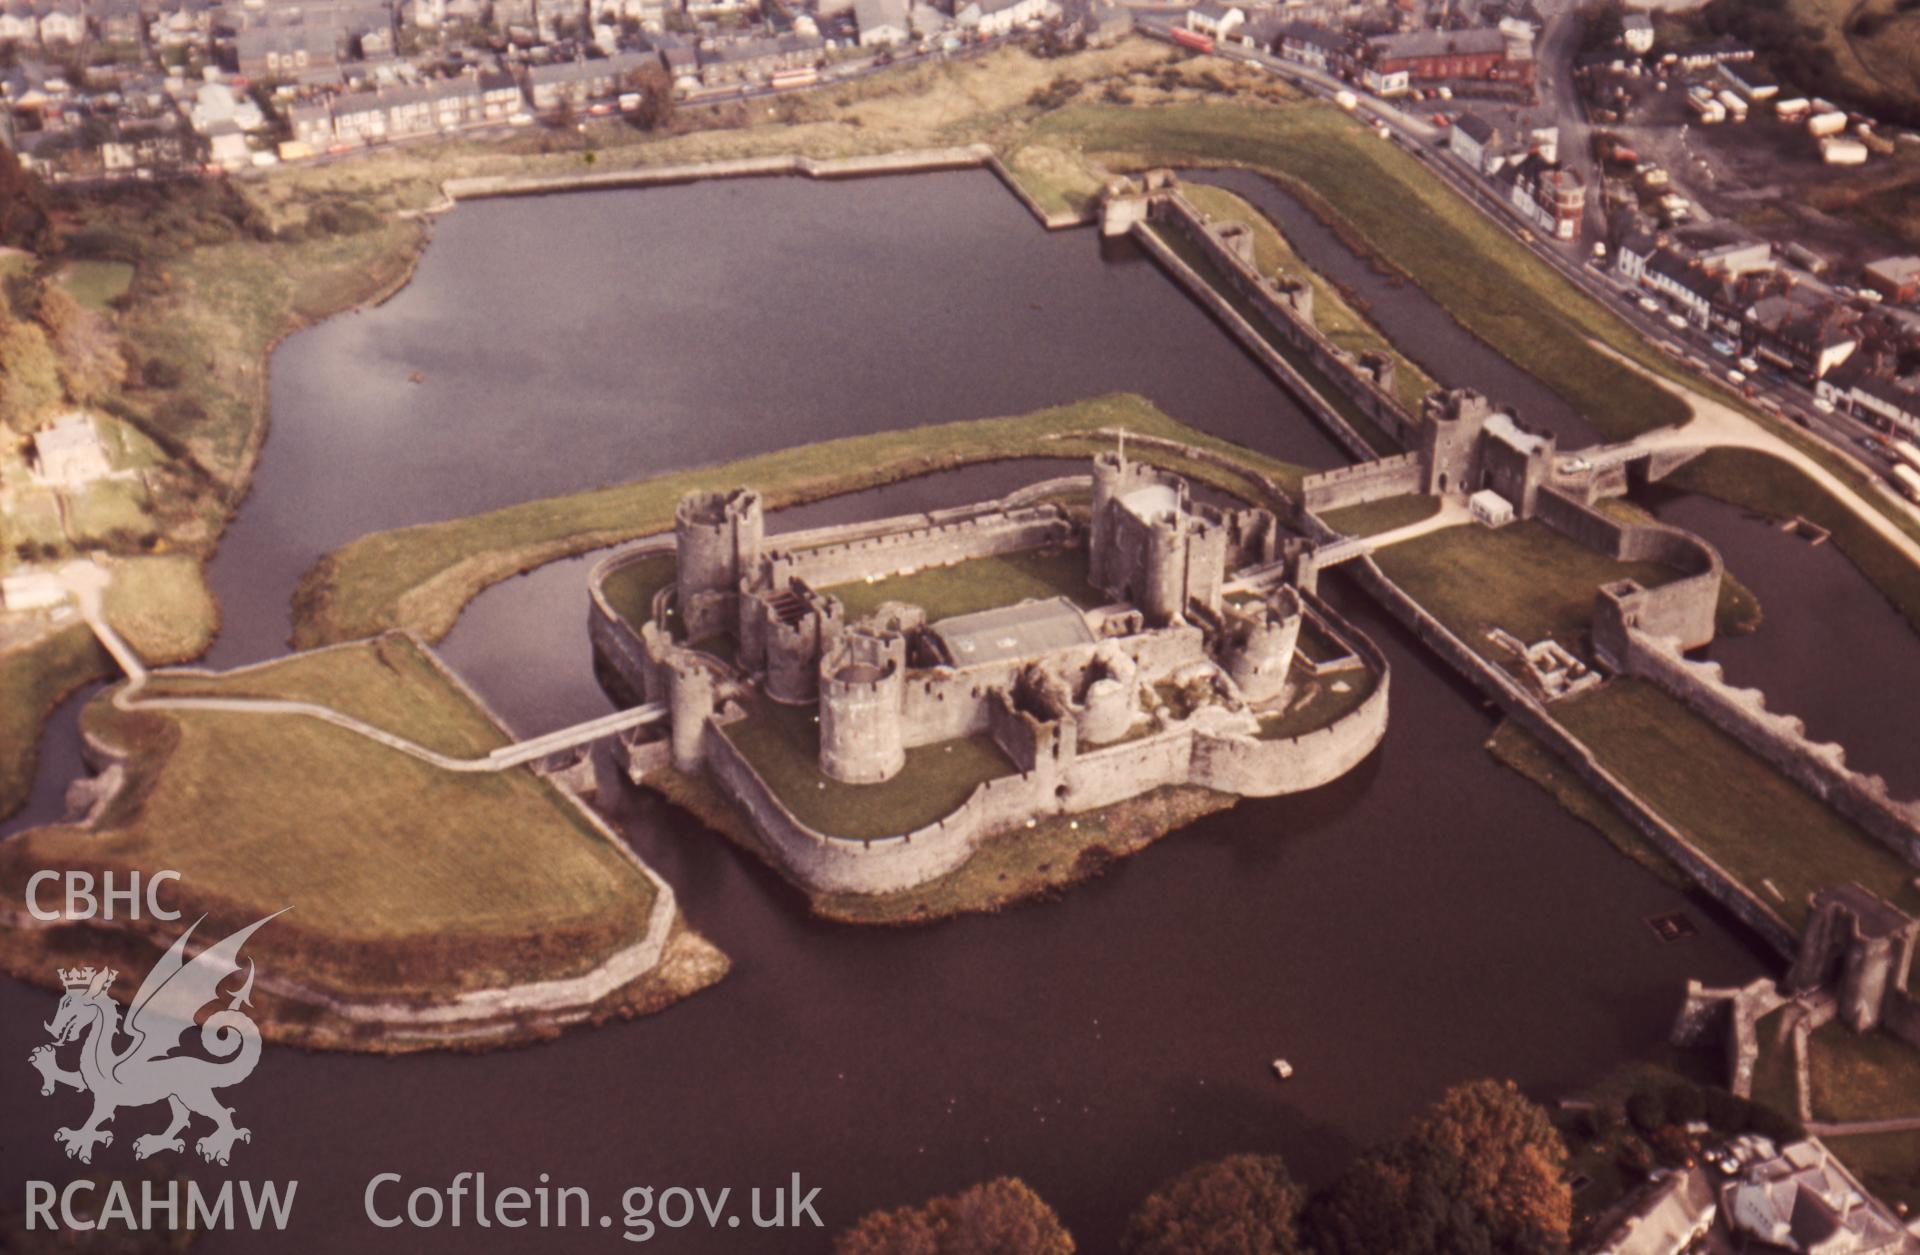 1 colour transparency showing aerial oblique view of Caerphilly Castle, undated; collated by the former Central Office of Information.